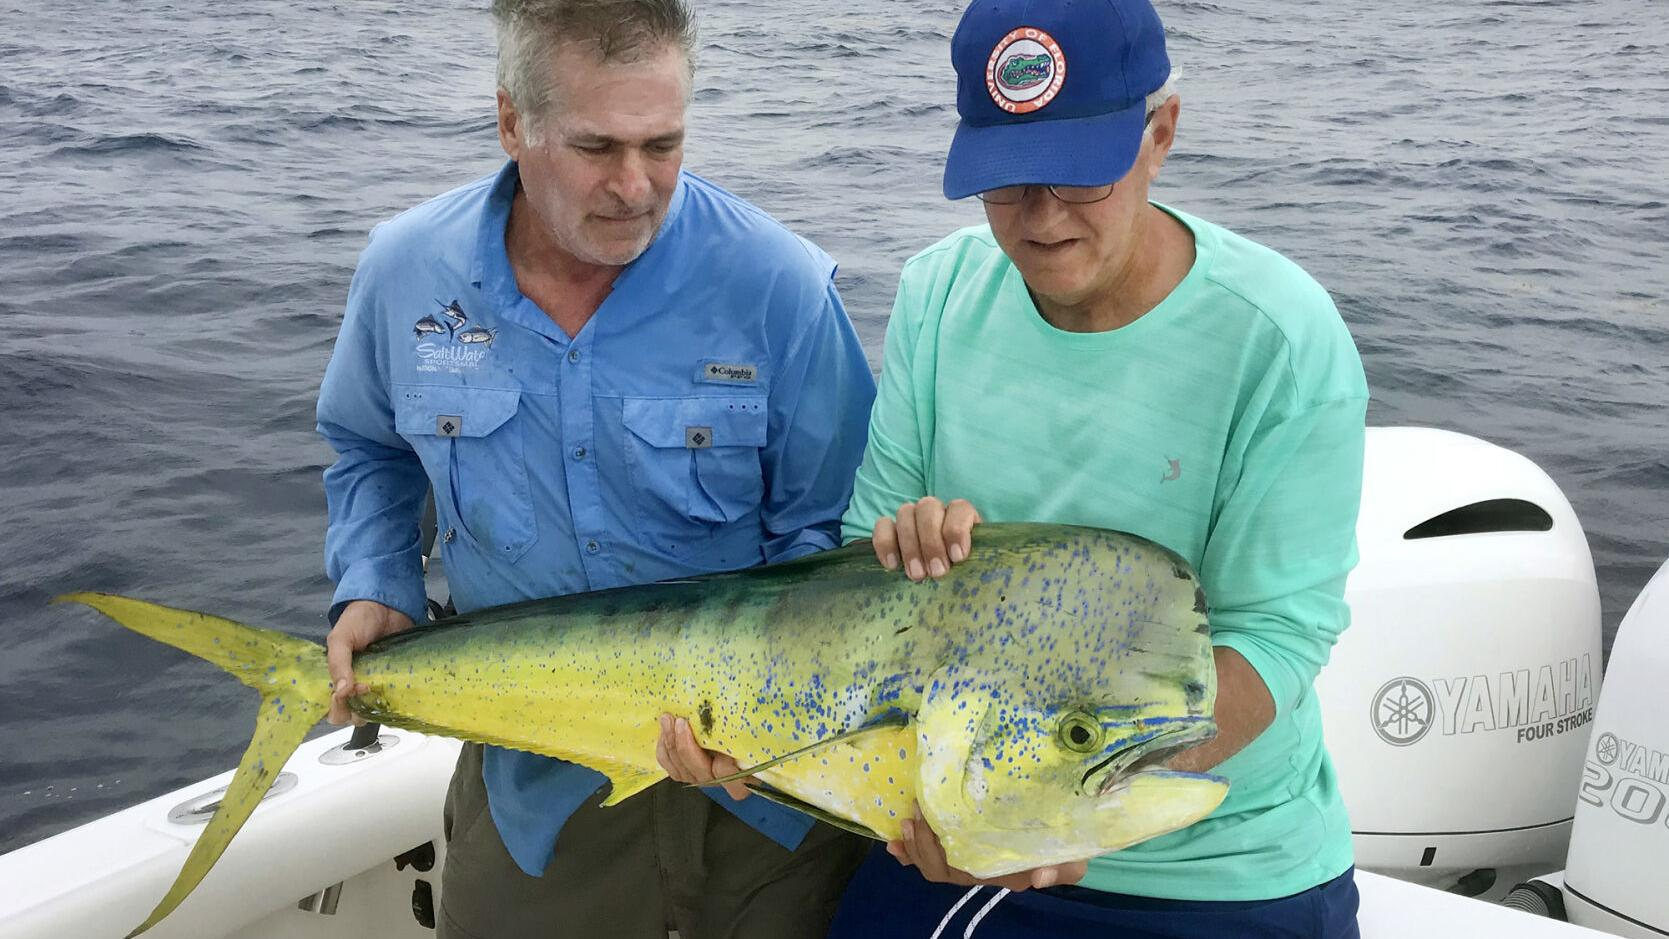 Fishing council seeks input on dolphin and wahoo